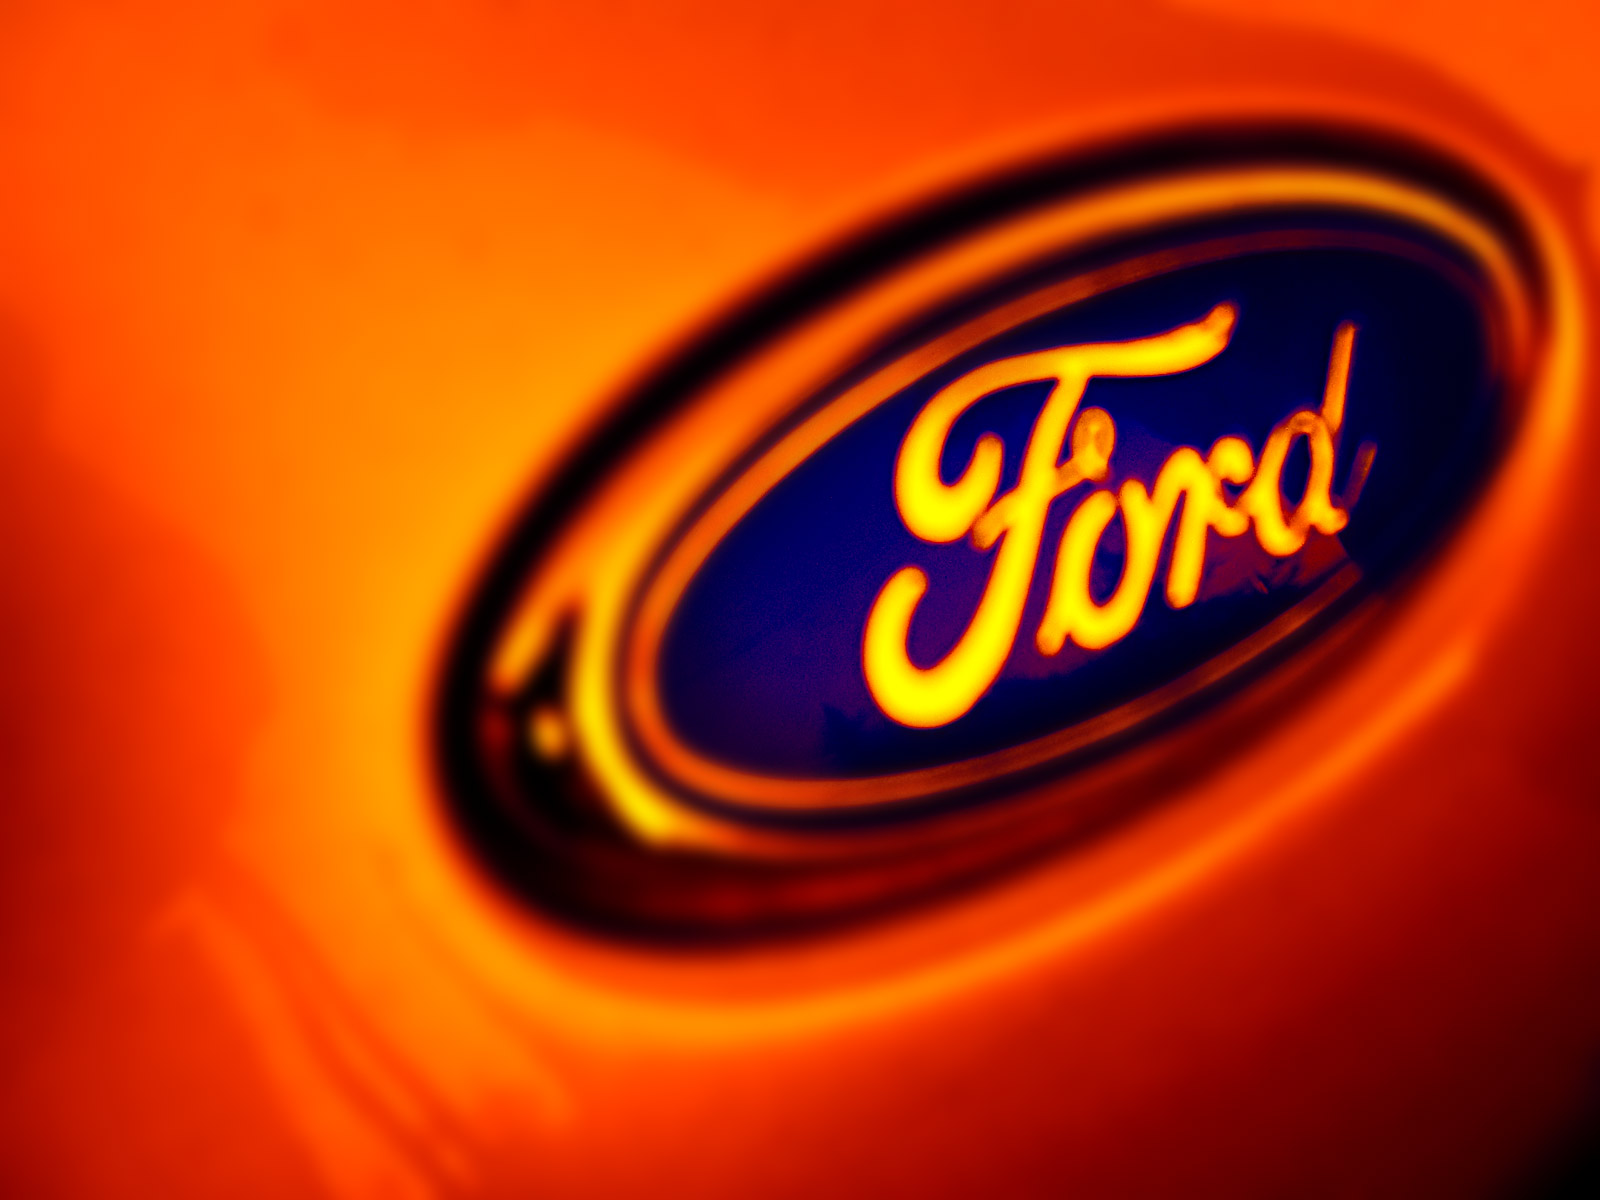 Cool Ford Wallpapers images 1600x1200